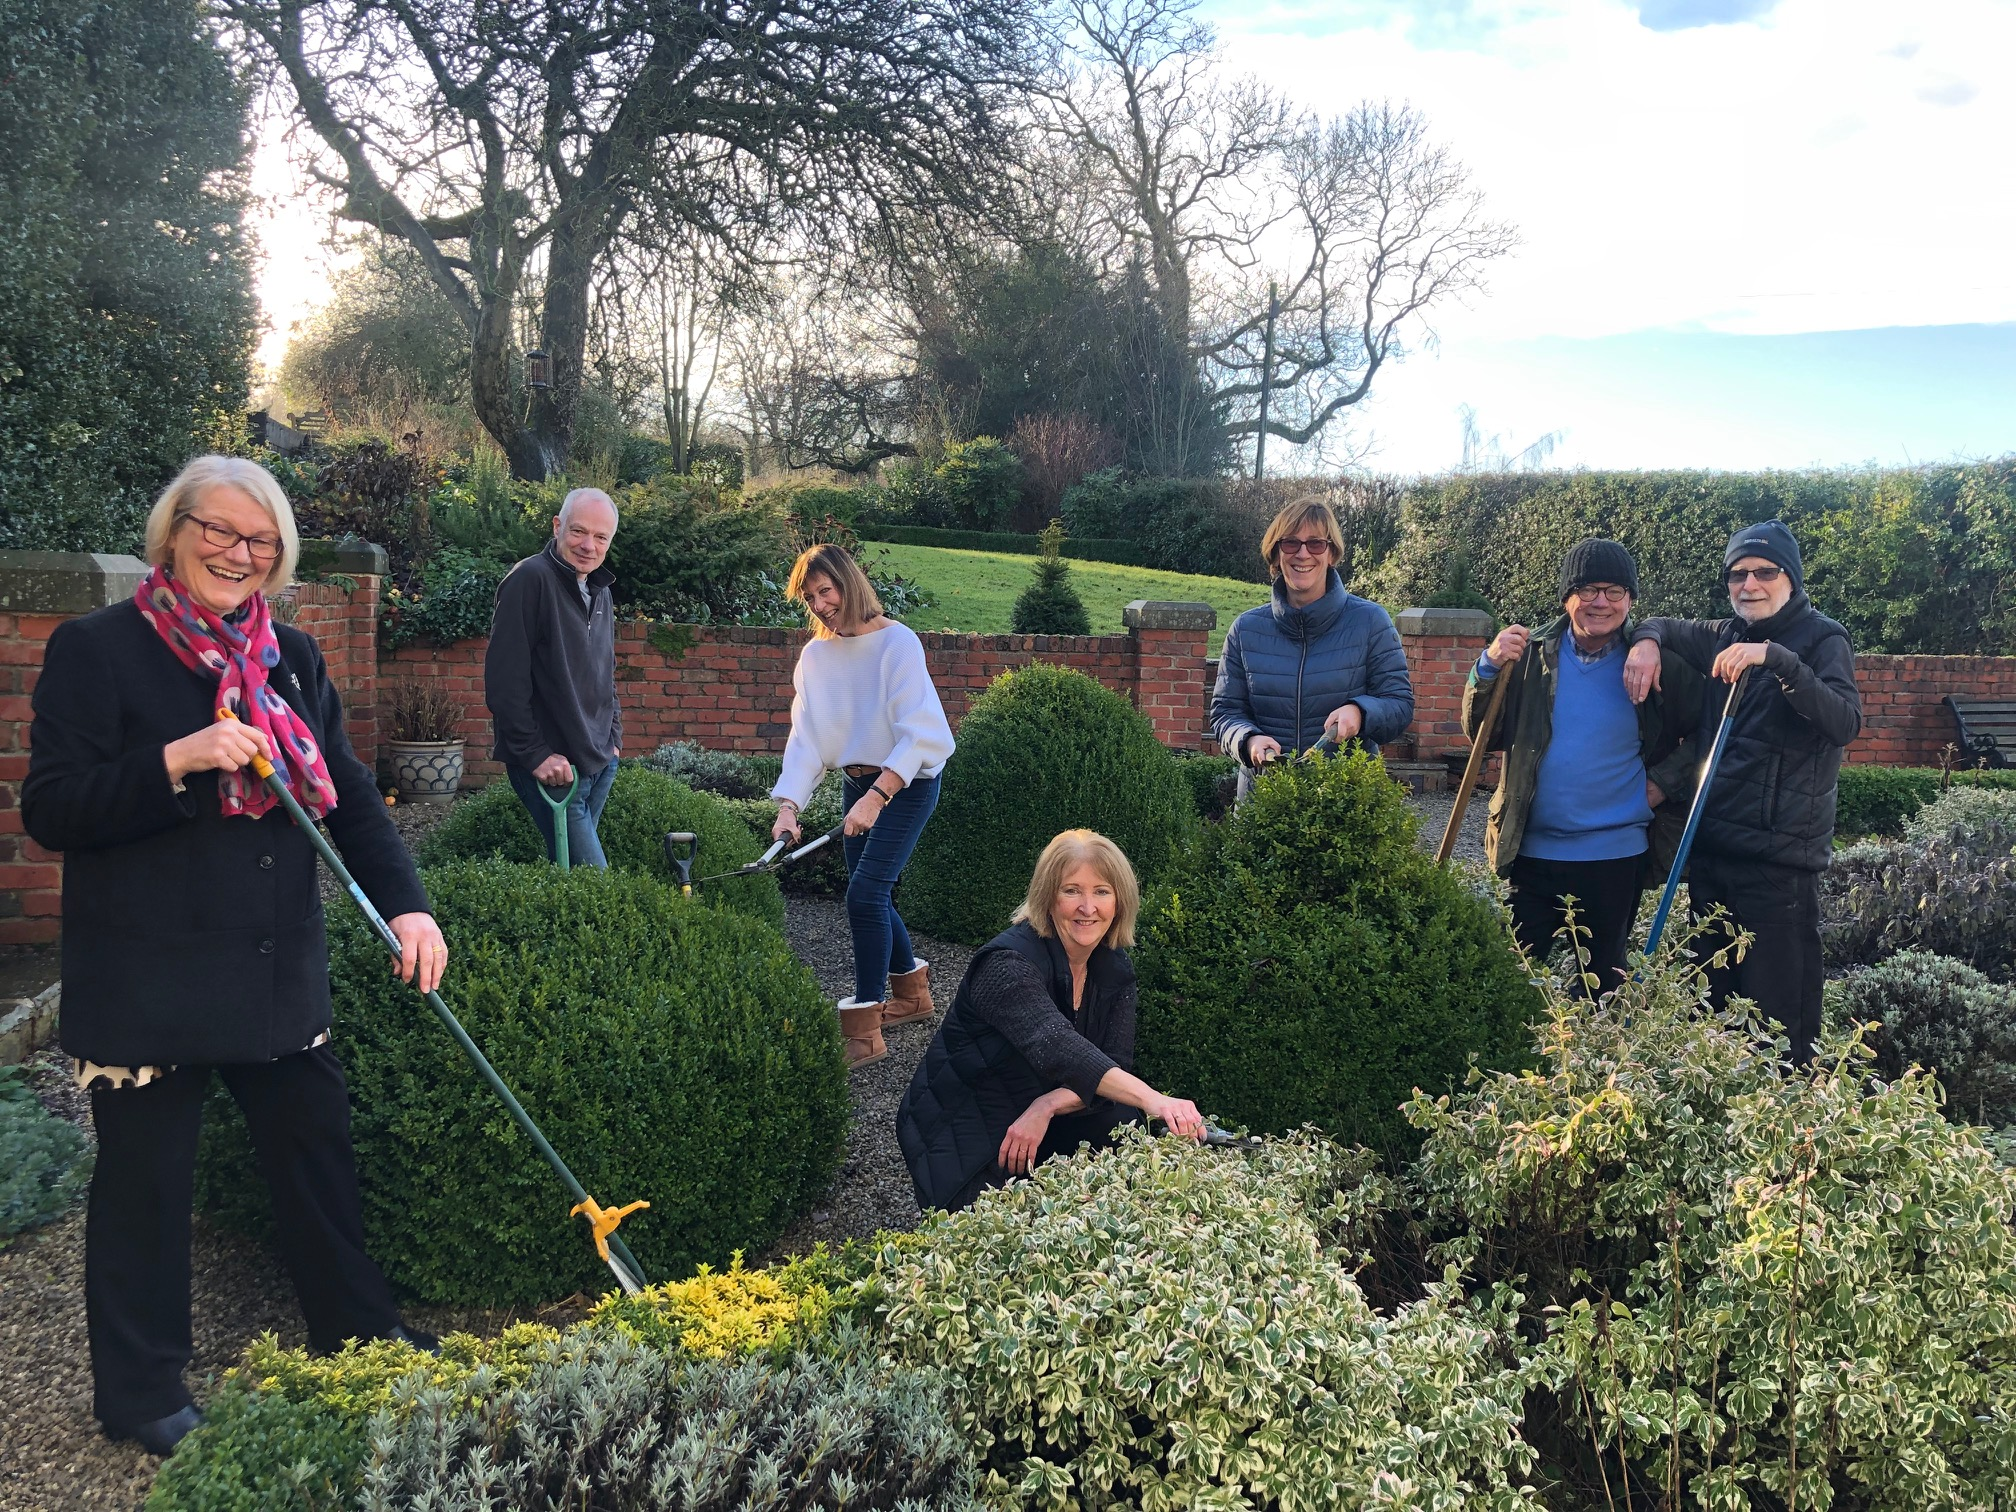 The Hogweed Gardening Club, in Hognaston, has received a donation of £240 from Lubrizol, in Derbyshire. Penguin PR: public relations, media and communications